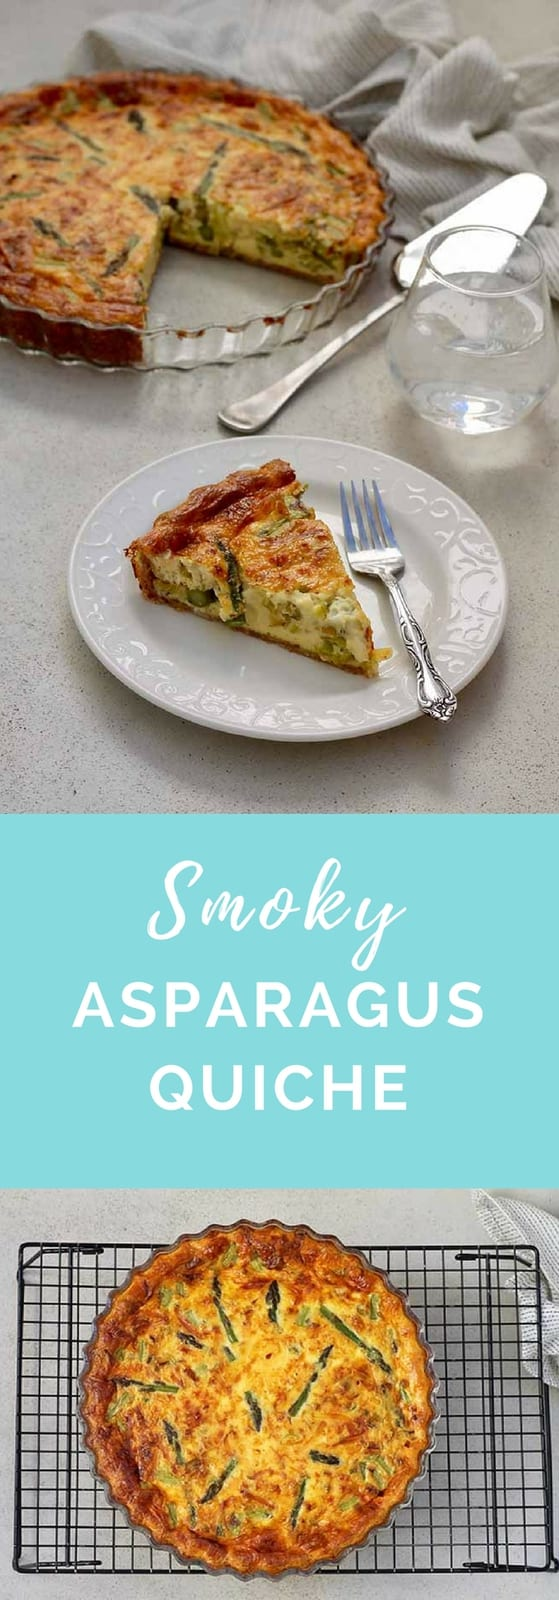 Smoky Asparagus Quiche! Made with softened leeks, smoked cheese, and a wholegrain spelt crust, this quiche is perfect for a springtime brunch. #quiche #eggs #vegetarian #breakfast #brunch #asparagus